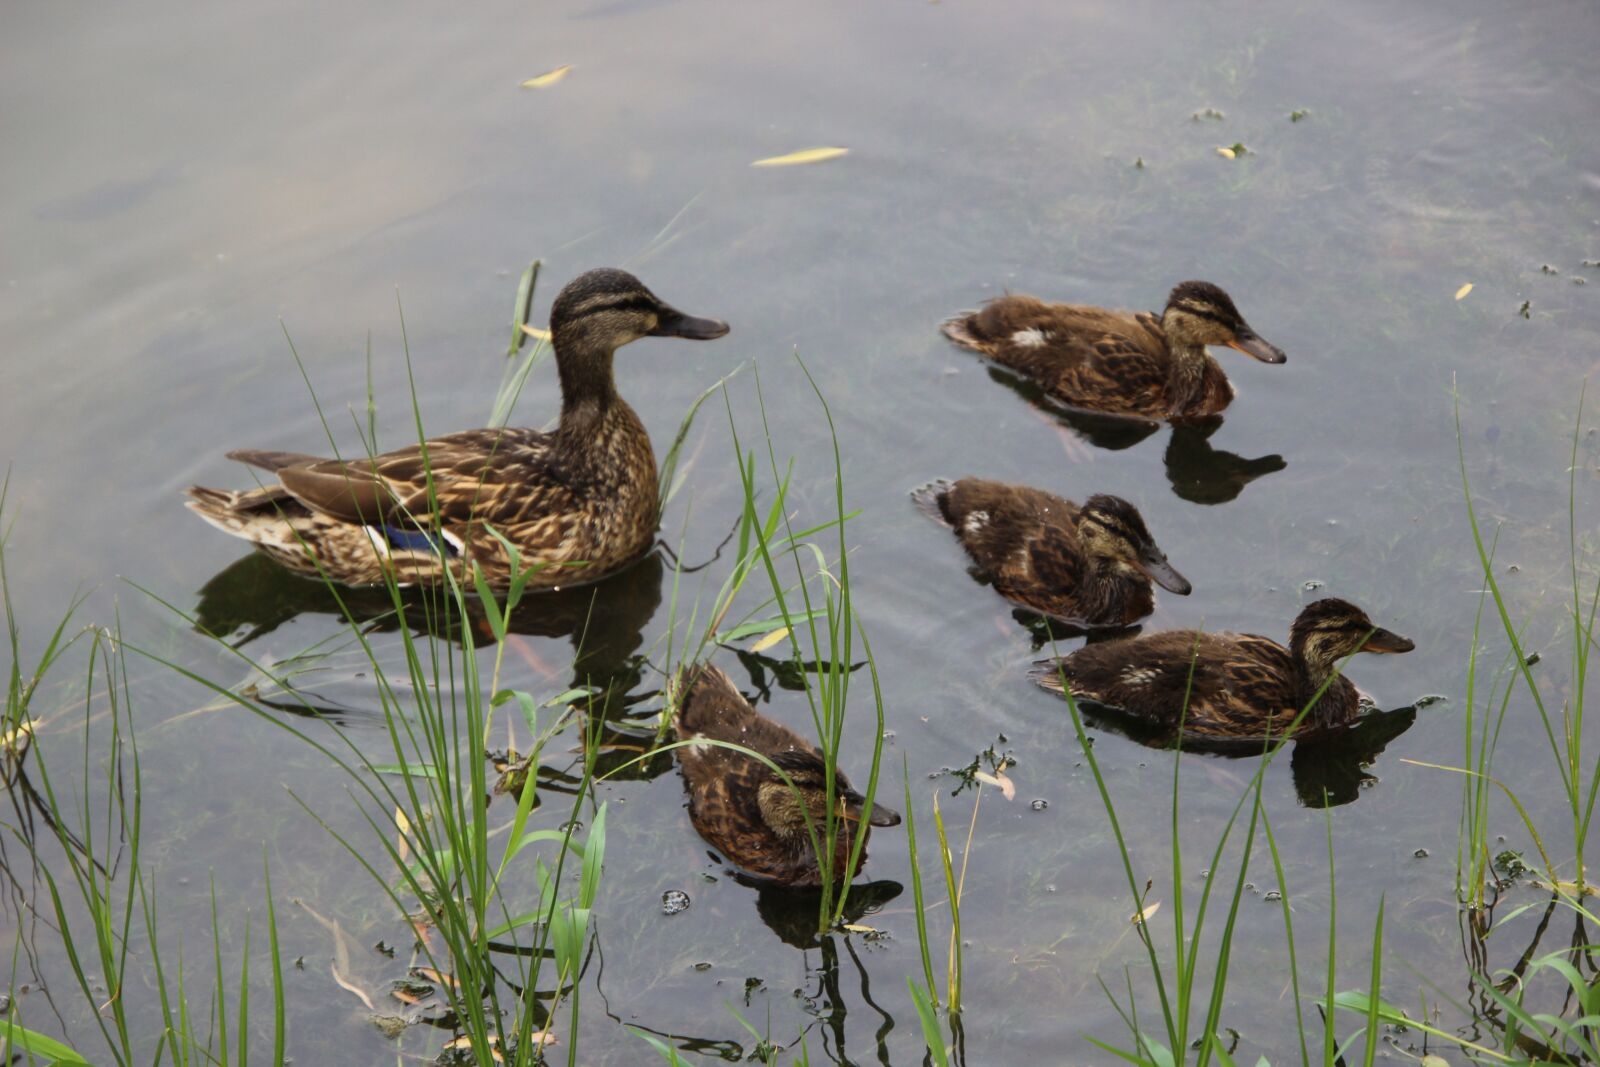 """Canon EOS 600D (Rebel EOS T3i / EOS Kiss X5) sample photo. """"Duck, ducklings, lake"""" photography"""